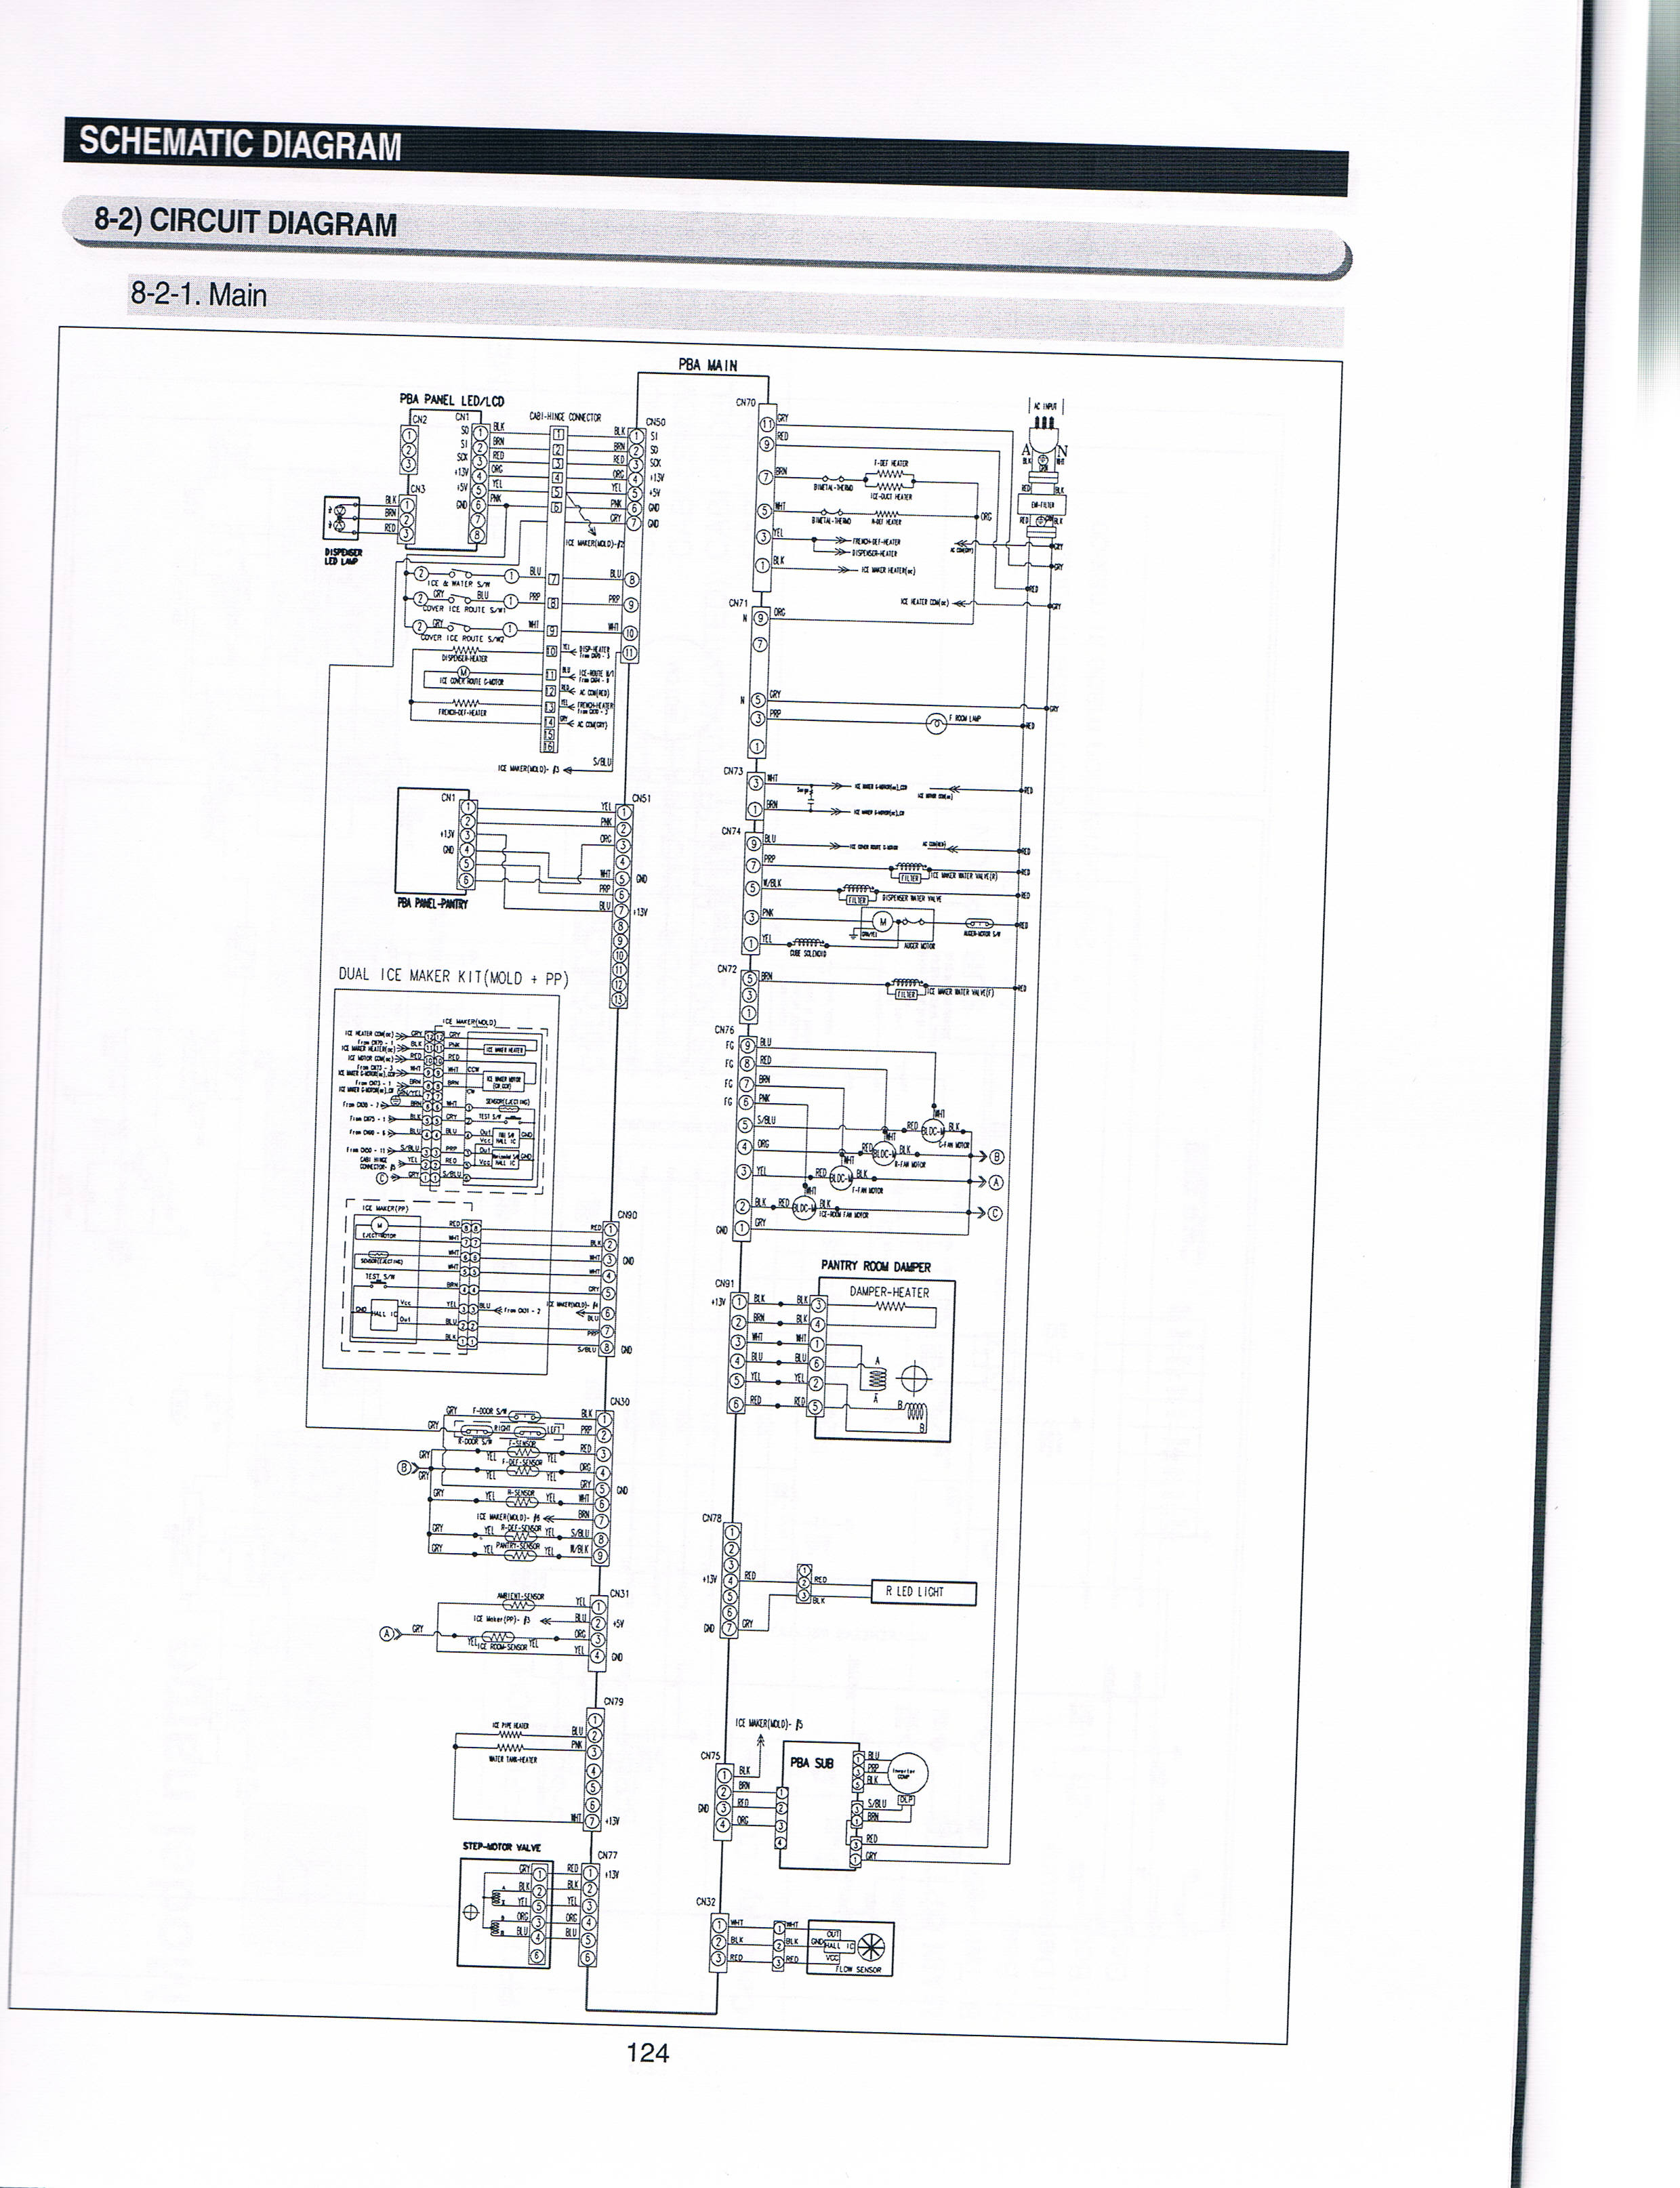 Idec relay wiring diagram free picture schematic wiring diagrams idec relay wiring diagram idec casablanca fans wiring diagram idec ice cube relay diagram wiring diagram and fuse box 2011 01 18 062835 ccf01182011 00000 asfbconference2016 Gallery